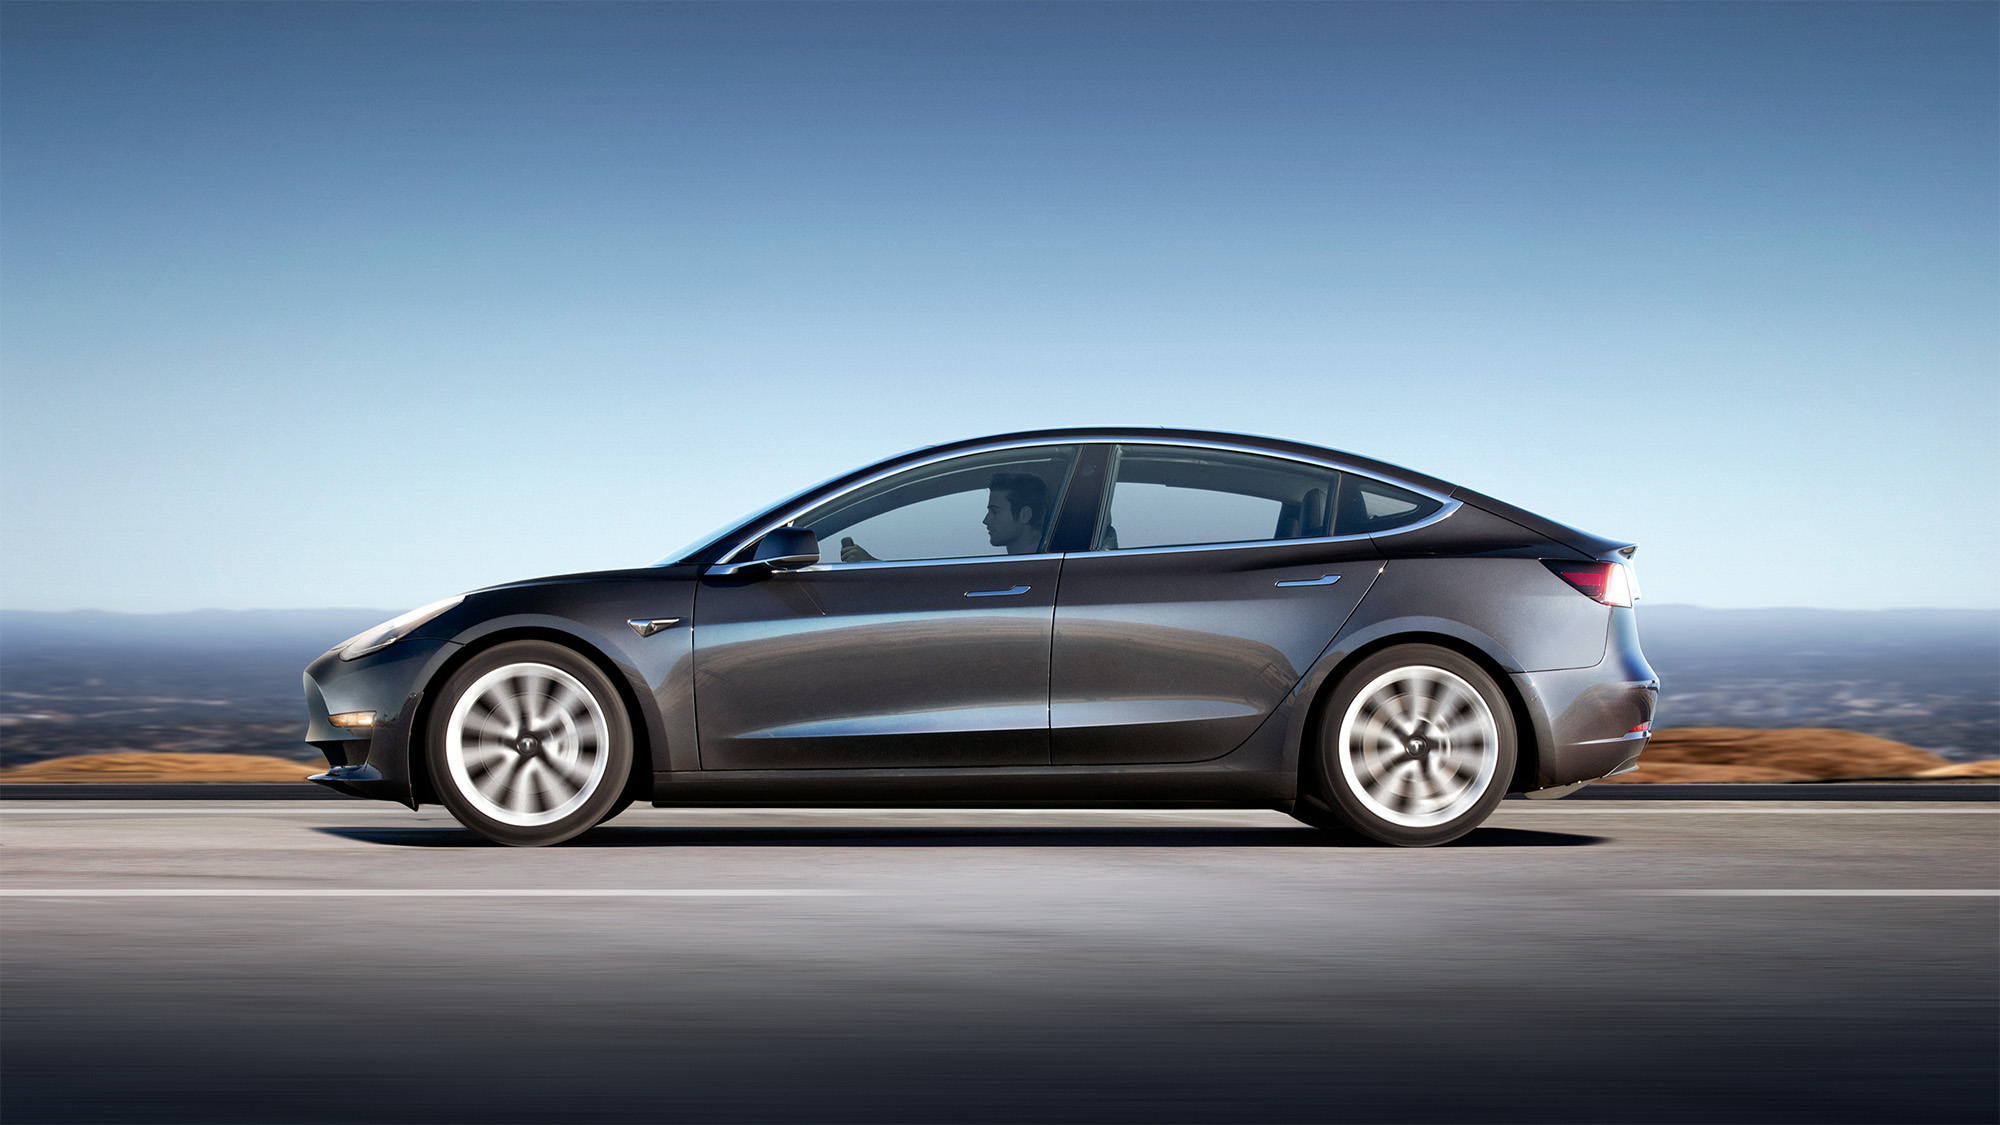 The Tesla Model 3 production time